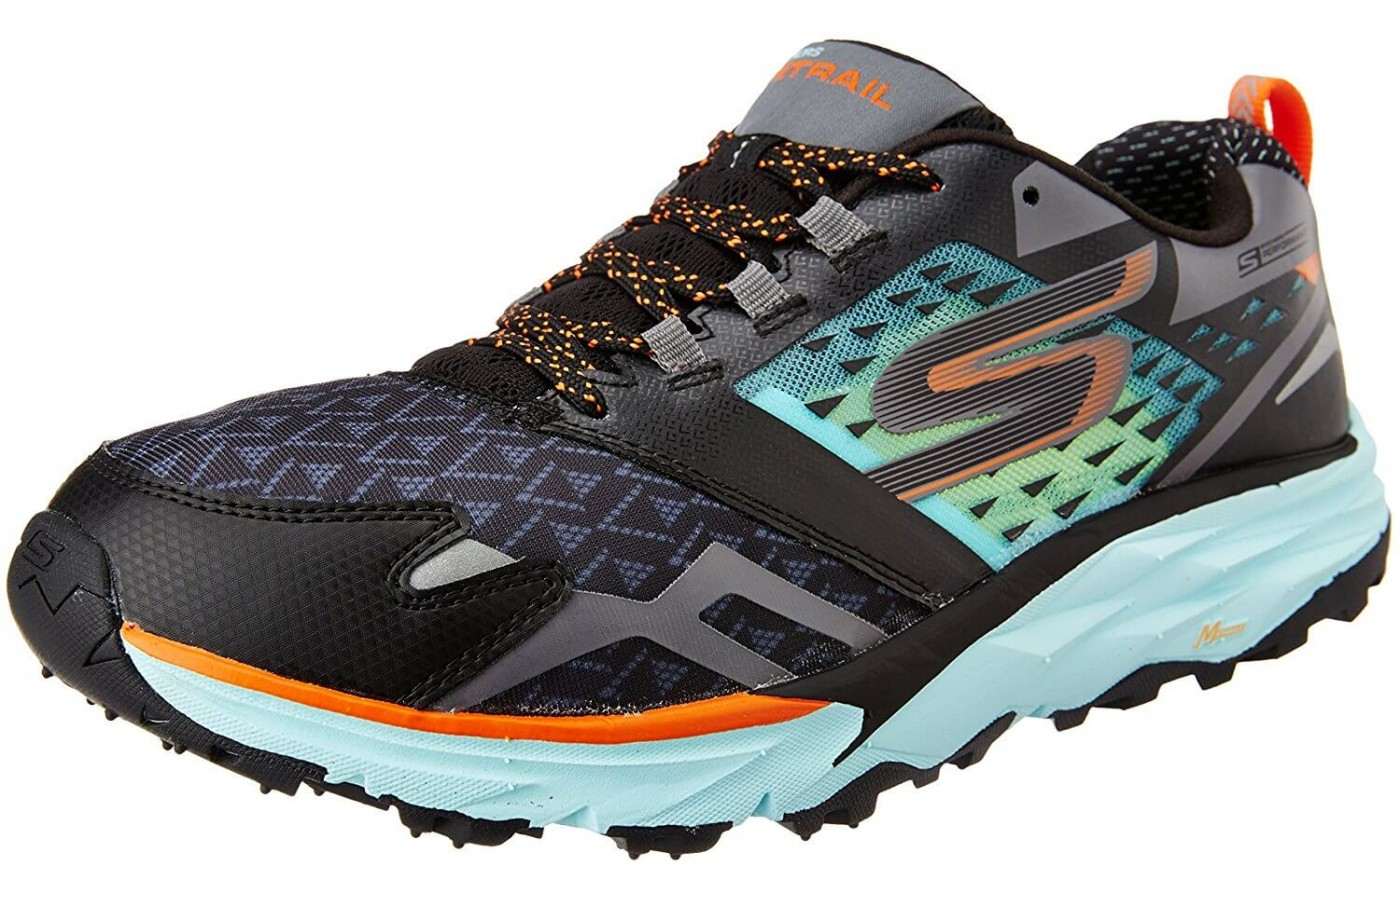 An angled view of the Skechers GoTrail.